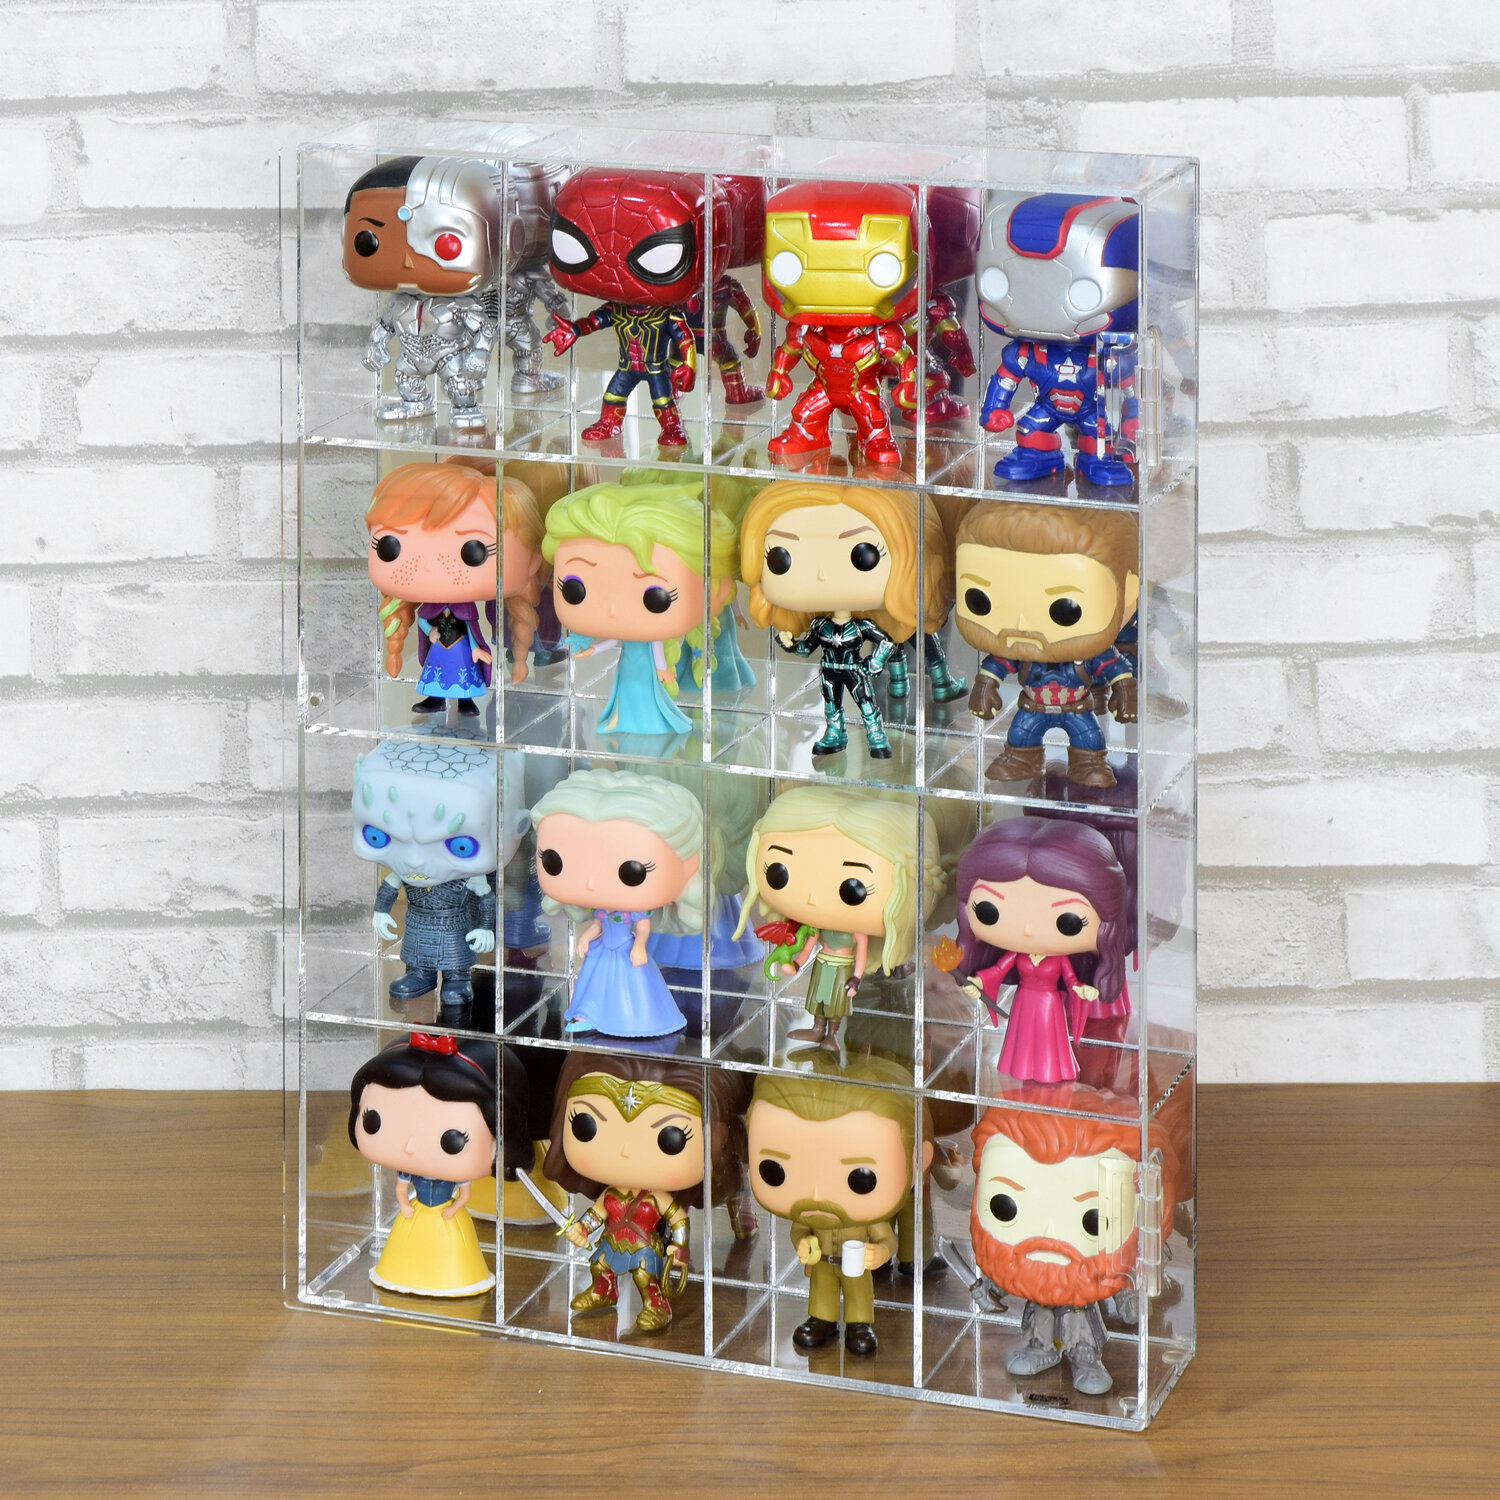 Dustproof Acrylic Display Case Clear Storage Holder Box for Figure Doll Toys